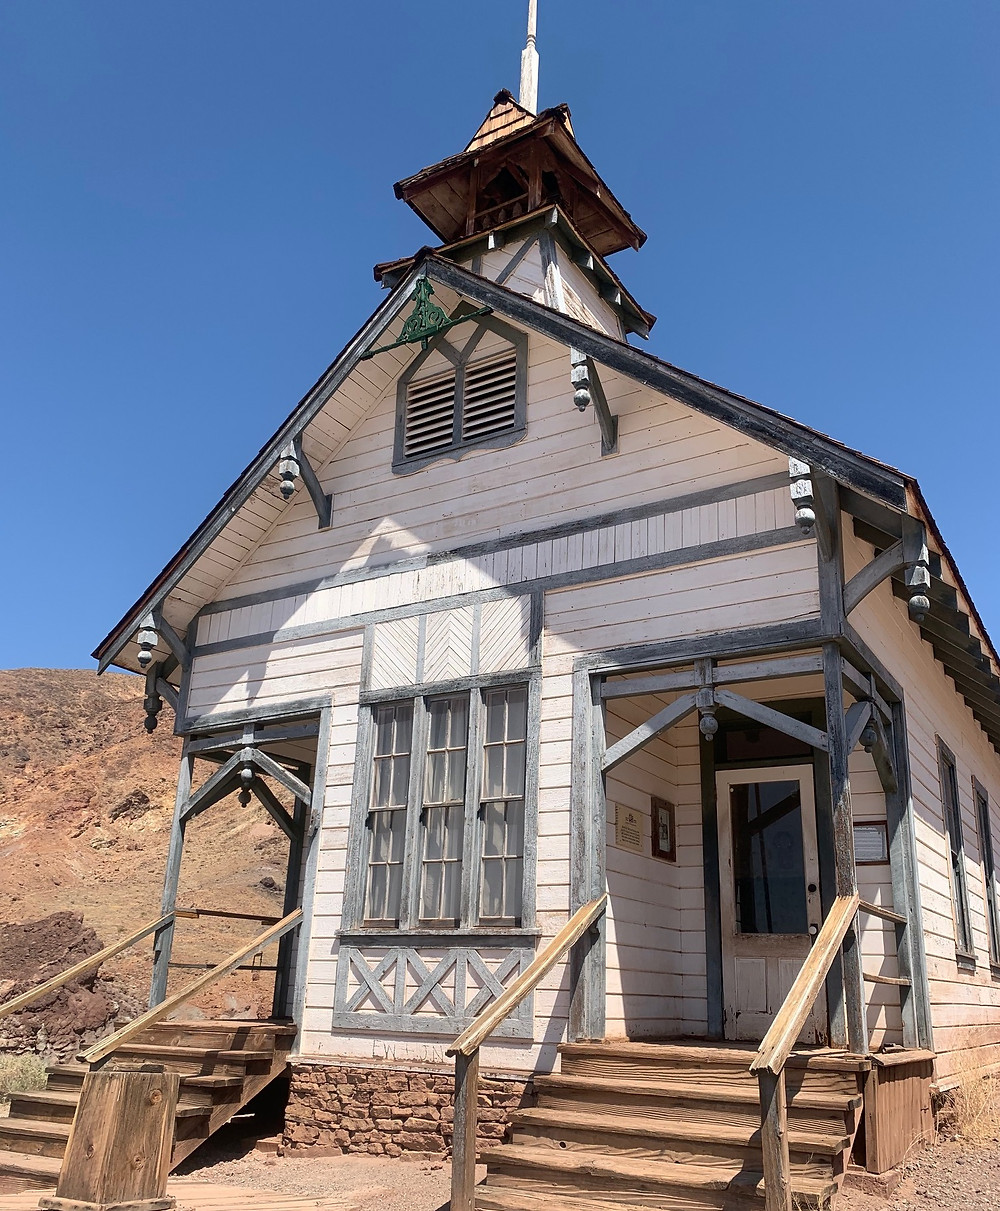 One Room School House in Calico Ghost Town